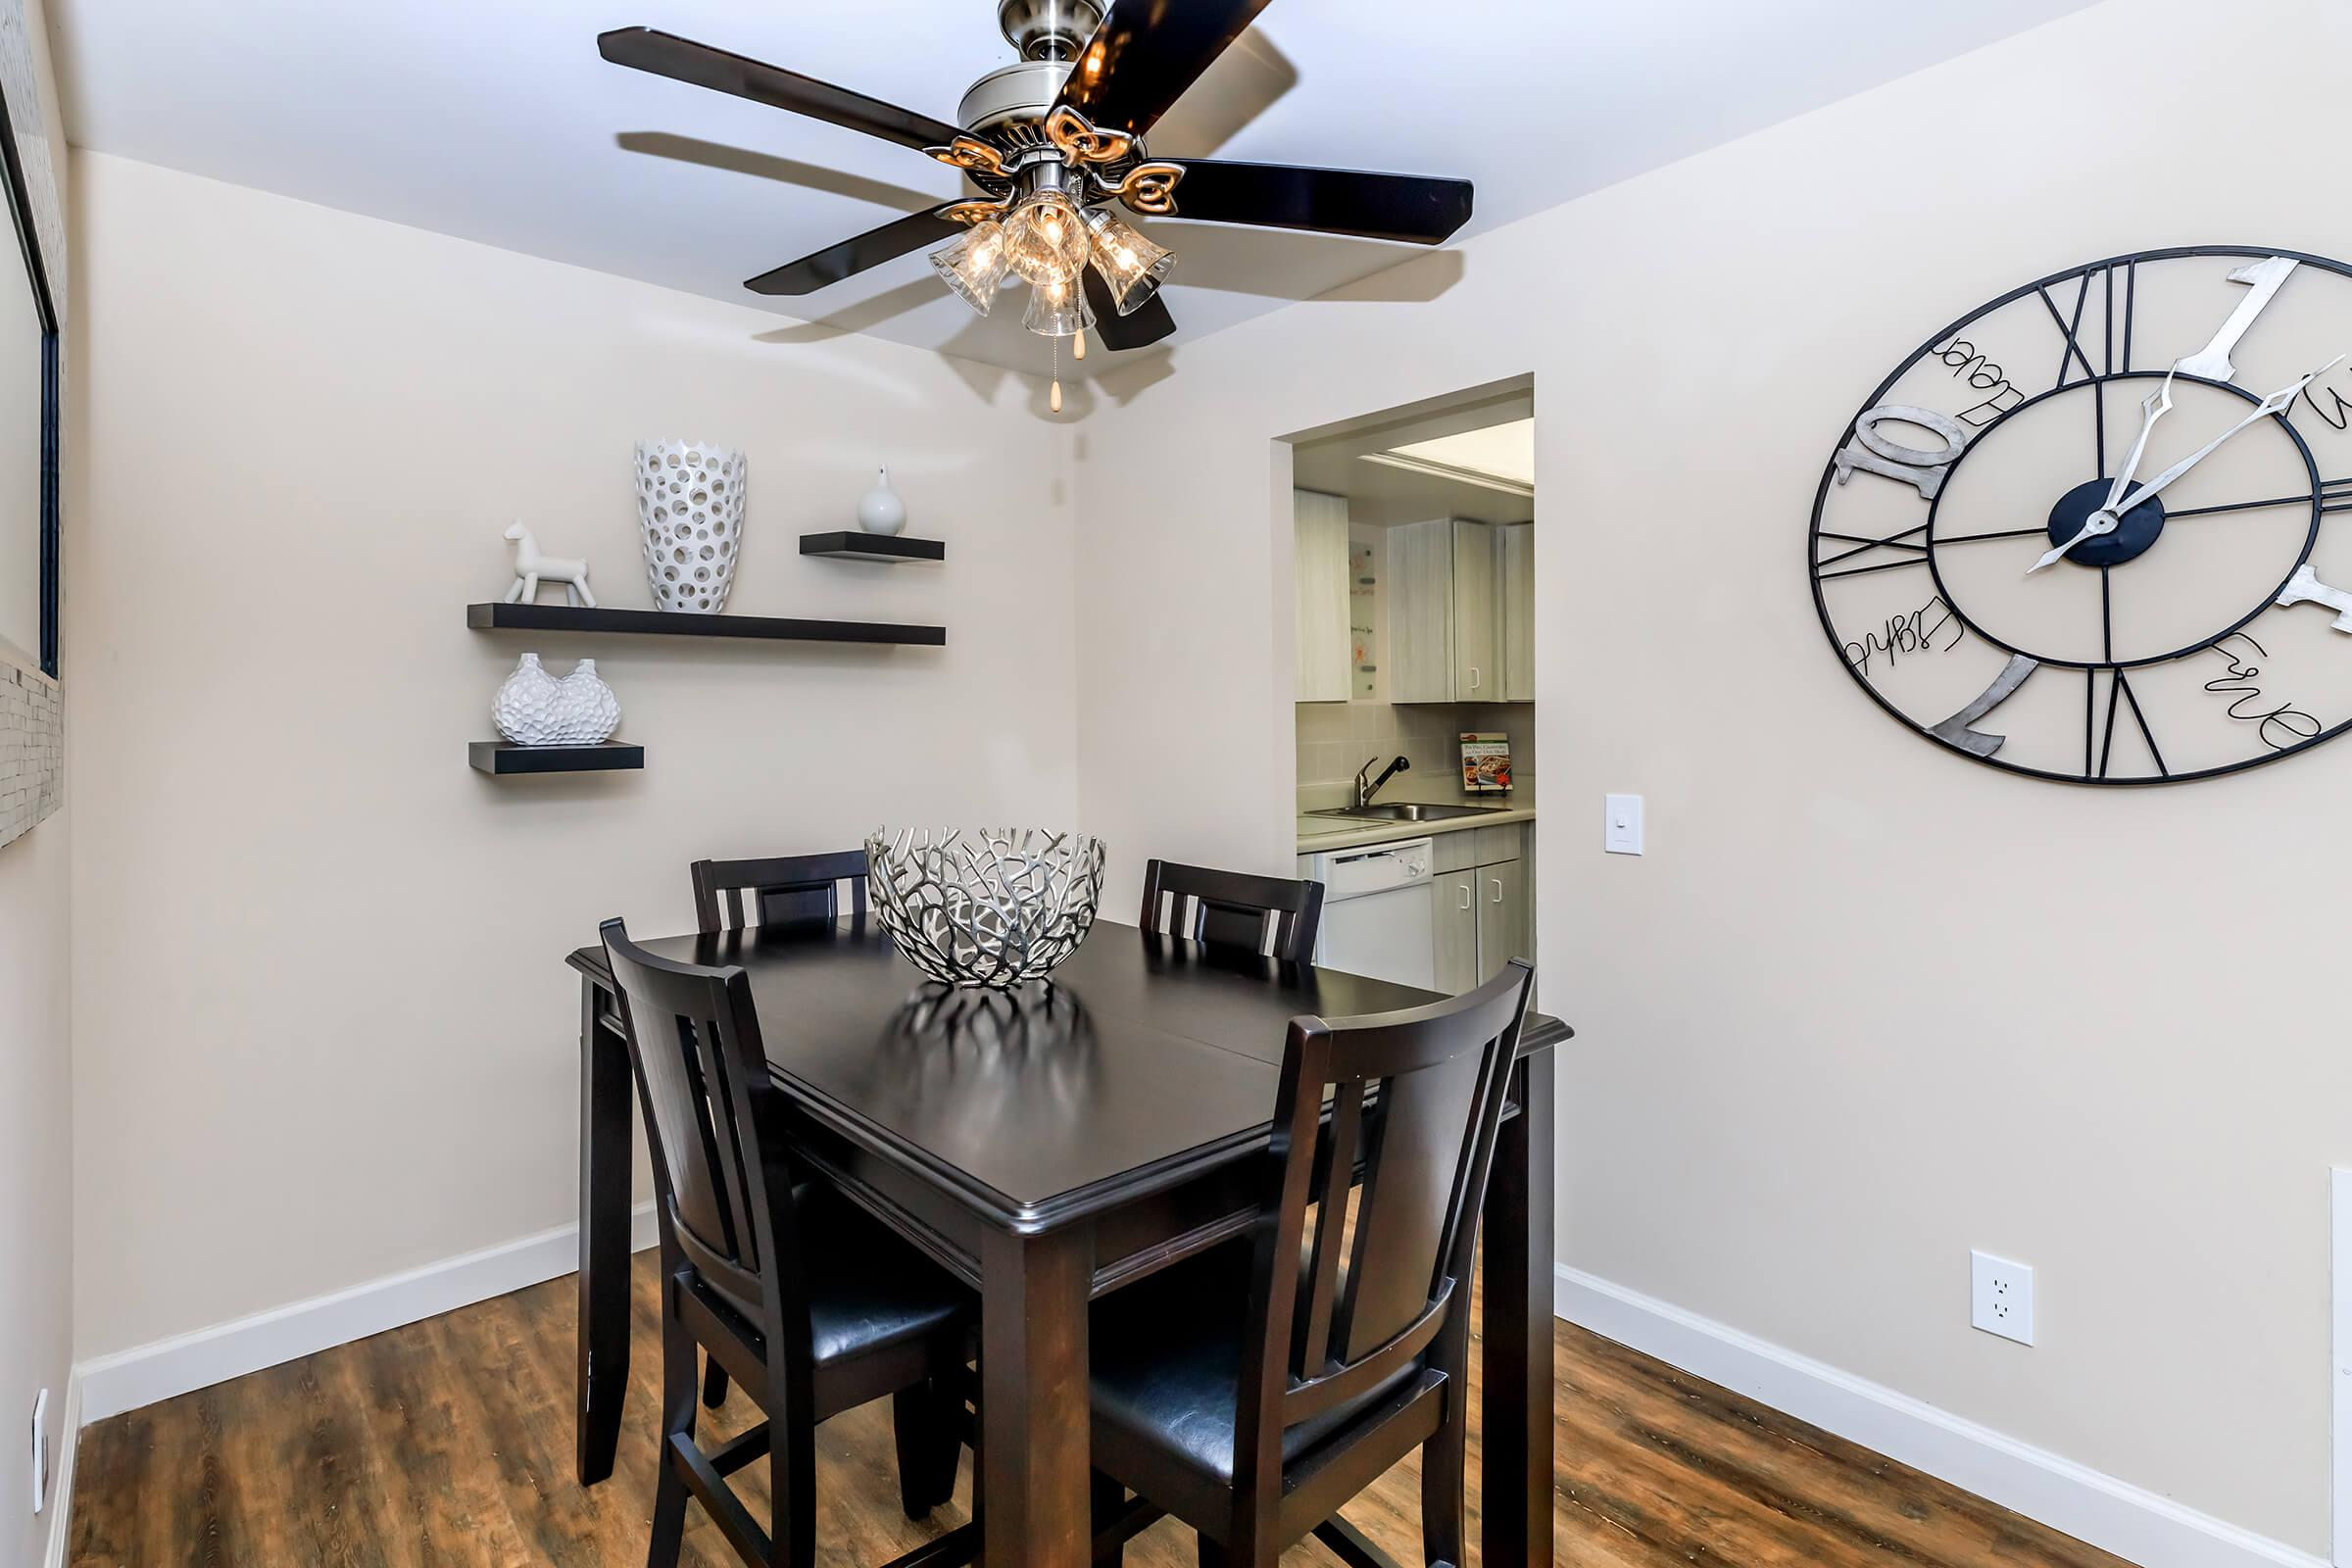 a room that has a clock on a table